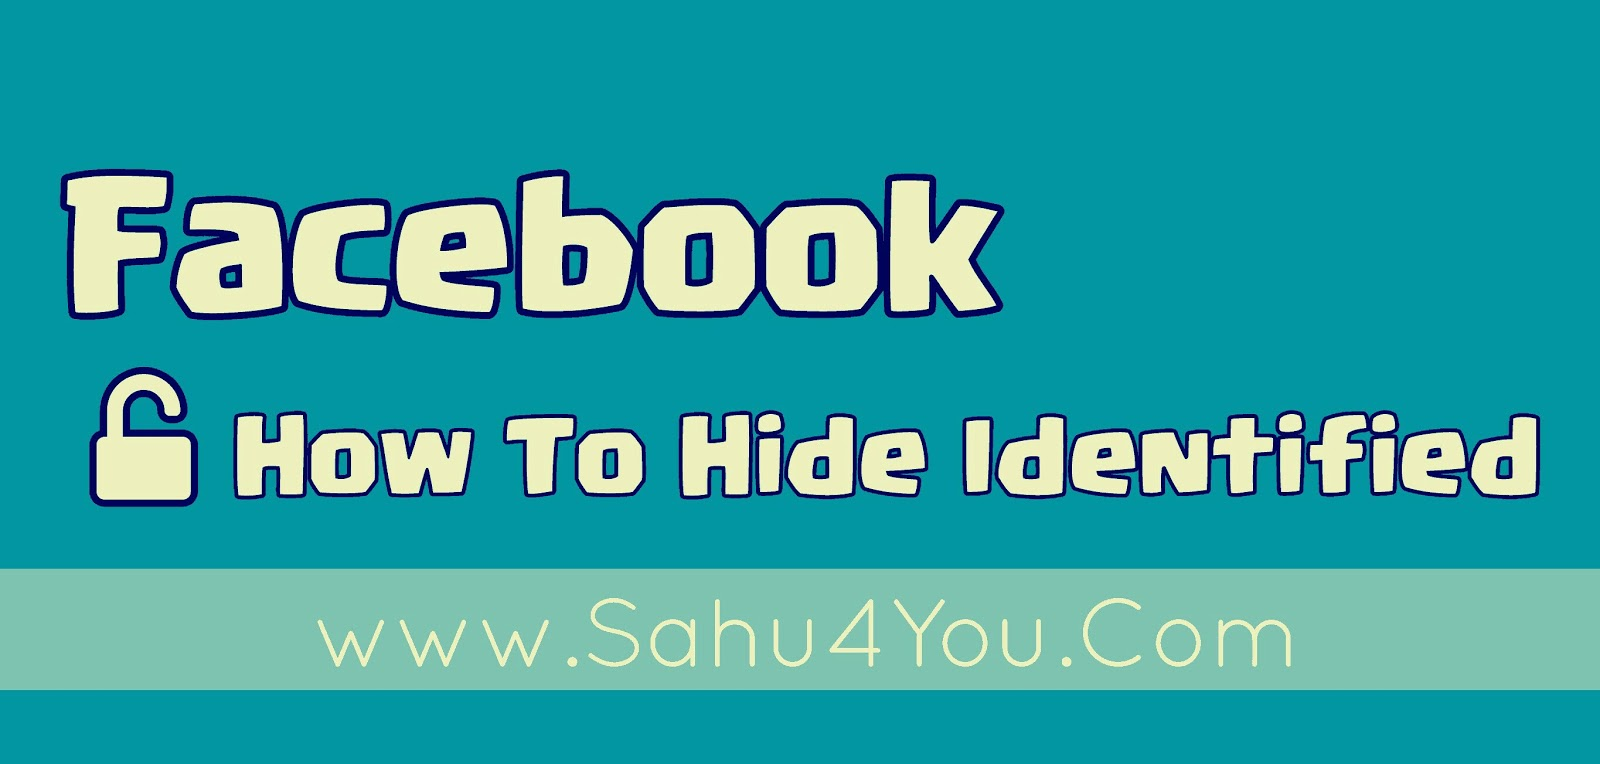 How To Hide Your Identity From Facebook Account